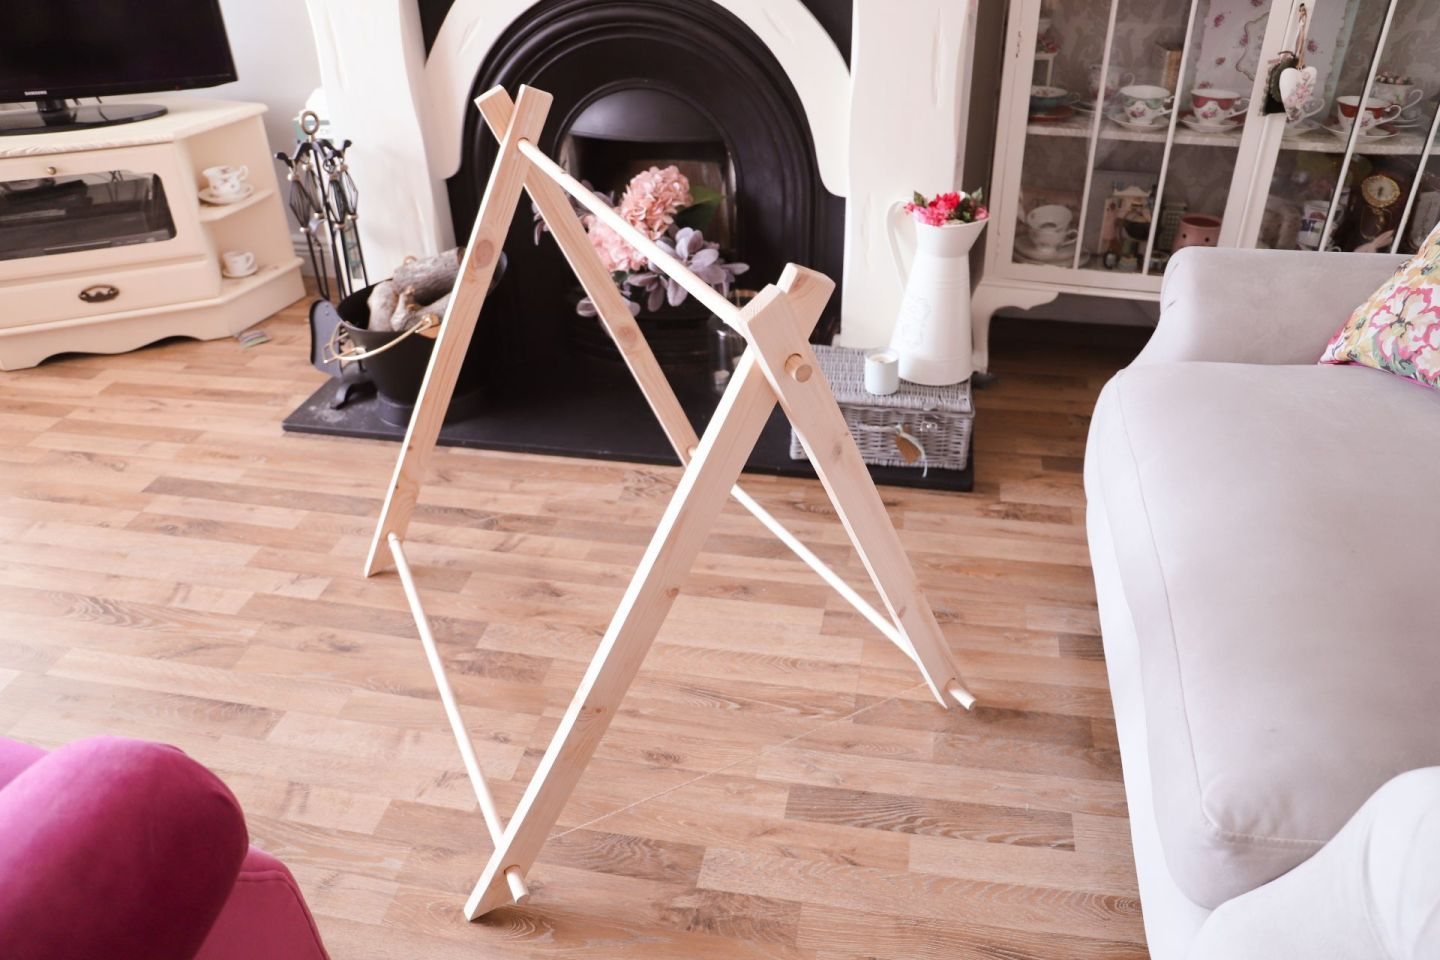 How to make a wooden tent